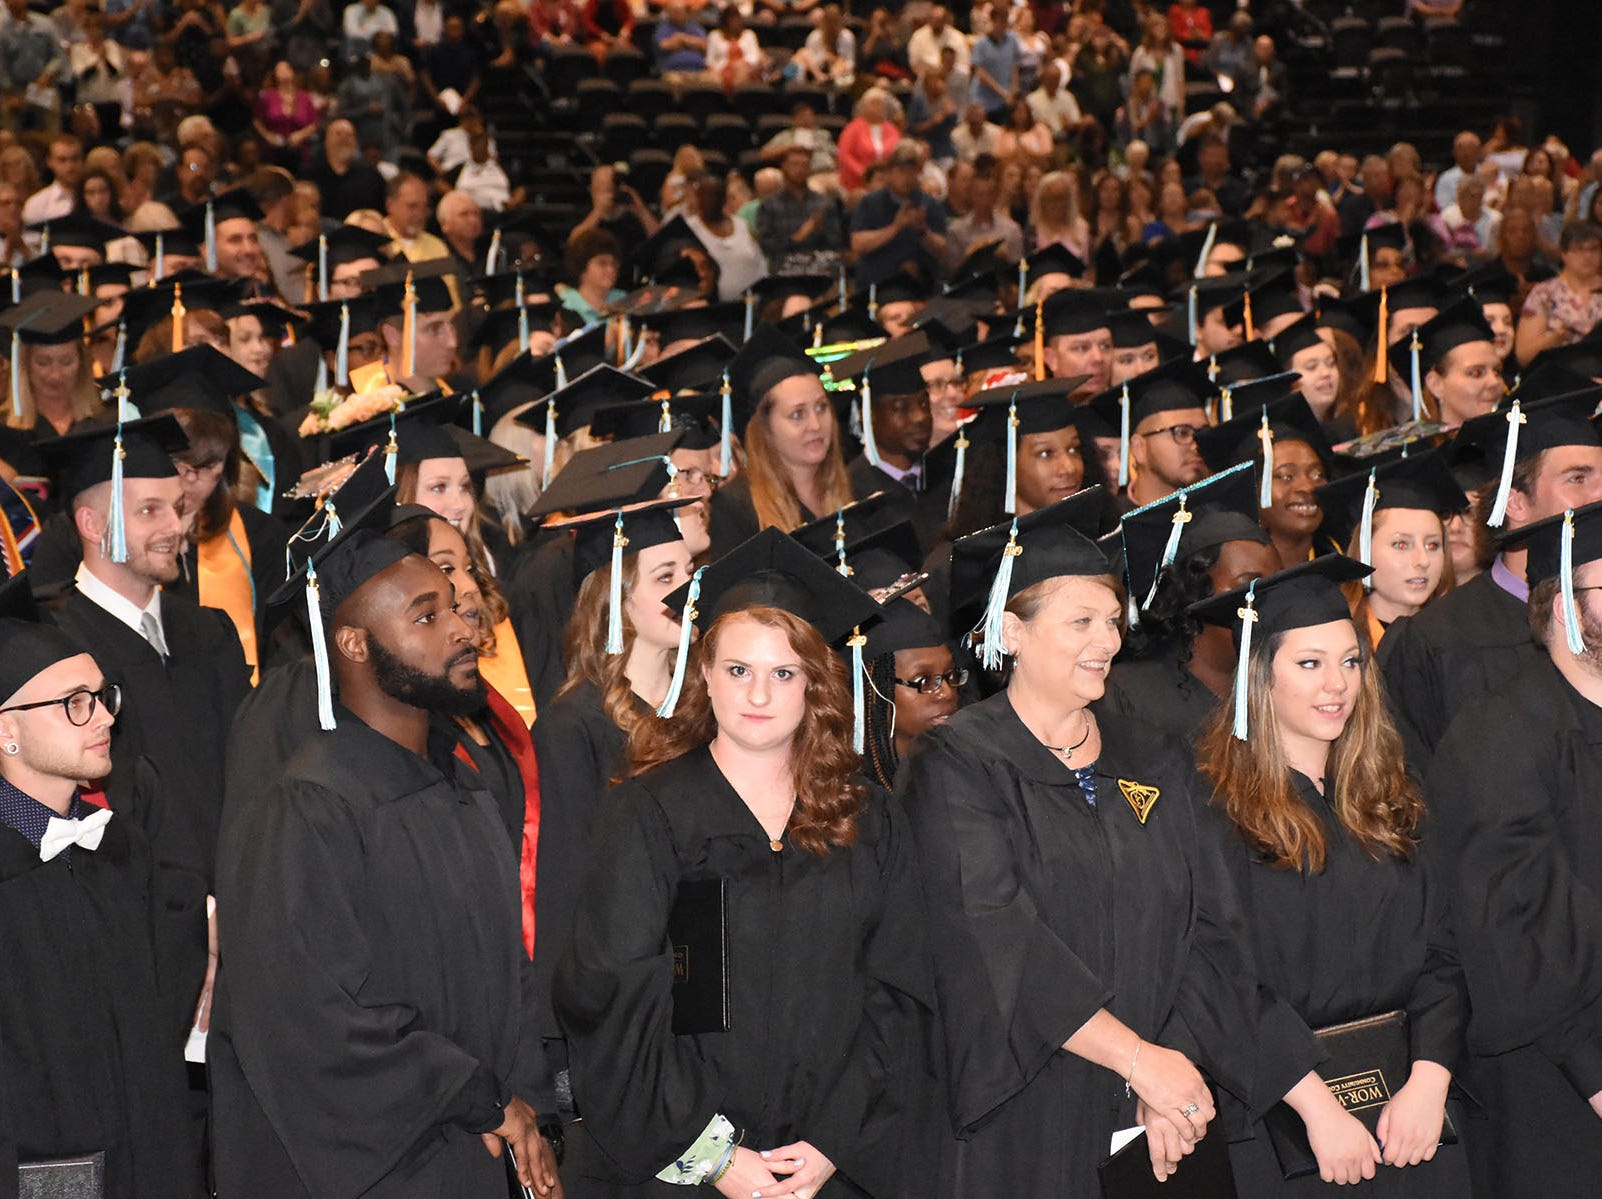 Graduates prepare to exit the ceremony after receiving their degrees at Wor-Wic Community College commencement exercises.